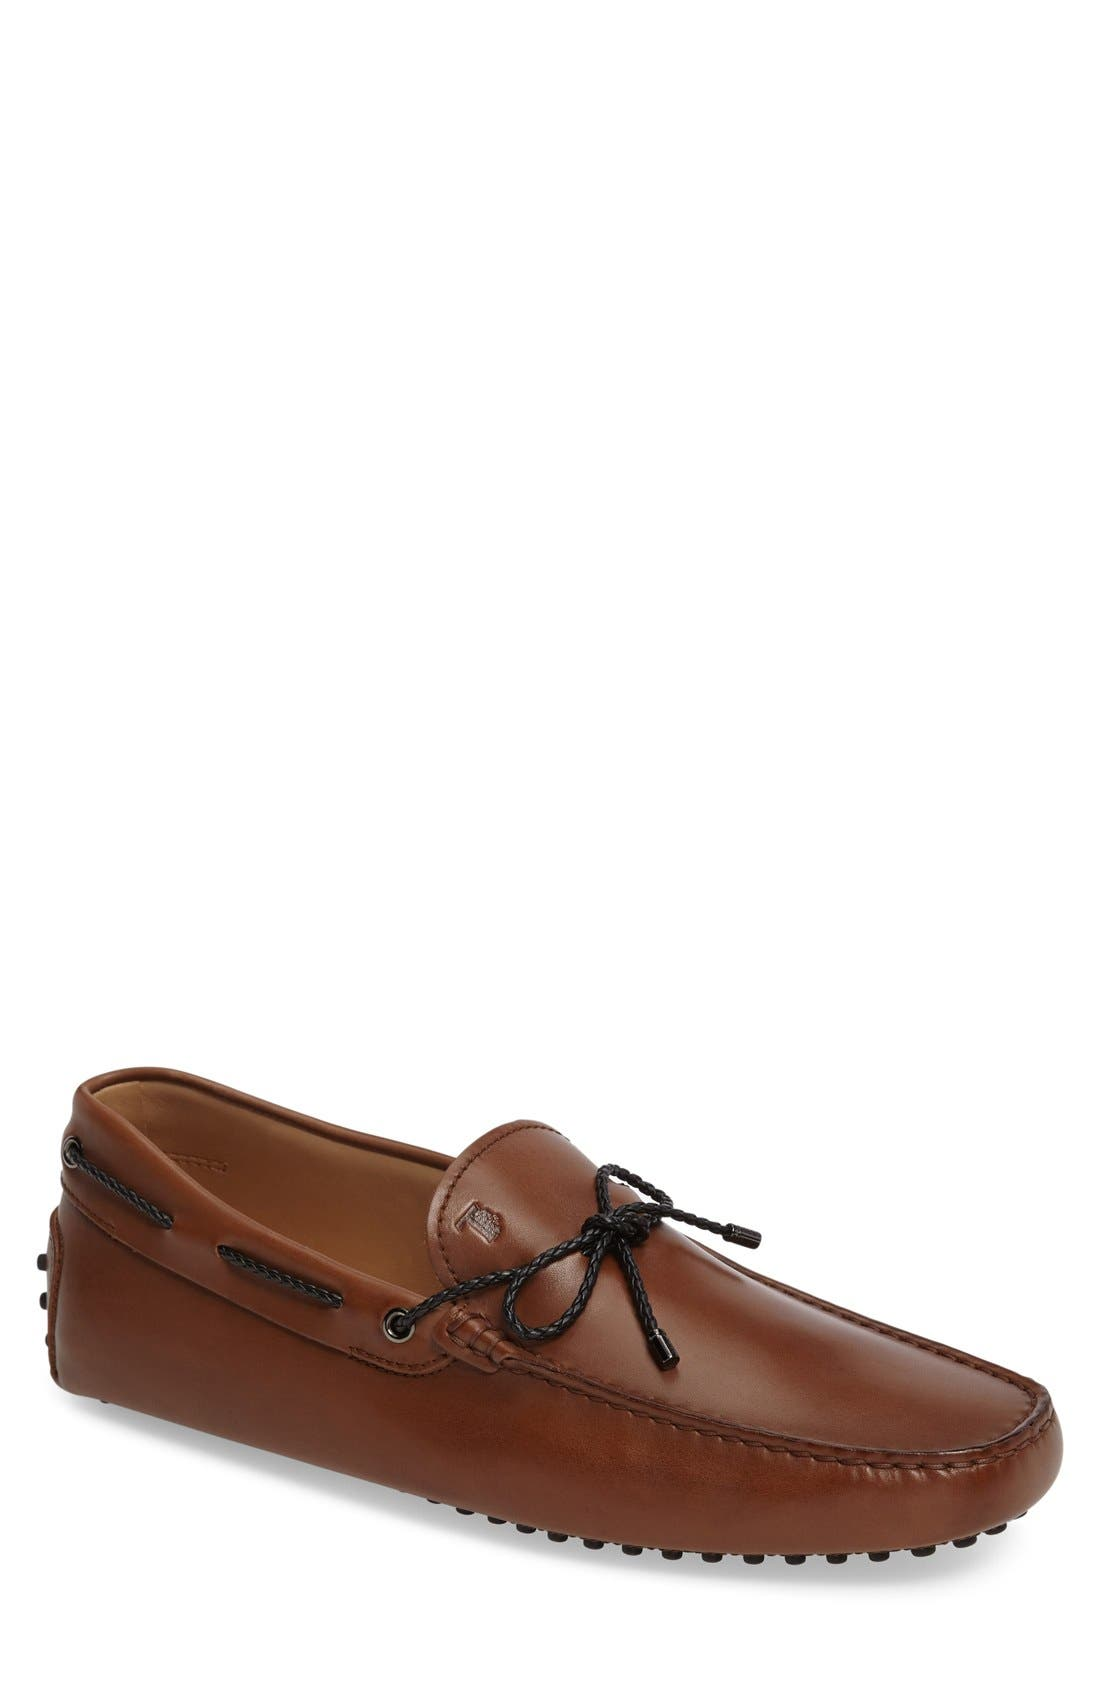 Tods Gommini Driving Shoe,                         Main,                         color, Light Brown Leather